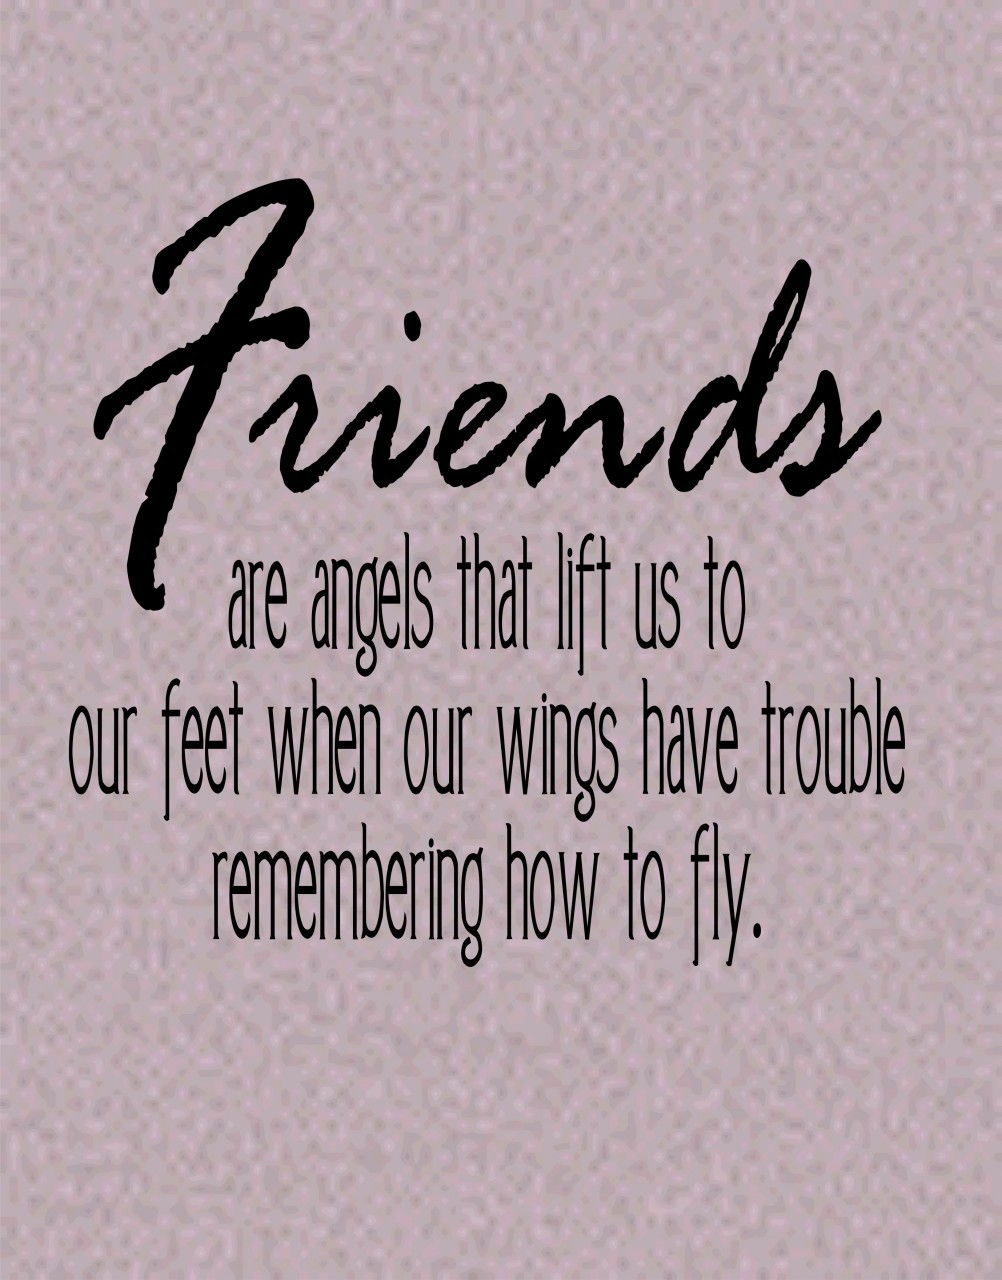 Friends are angels who lift us to our feet when our wings have trouble remembering how to fly.